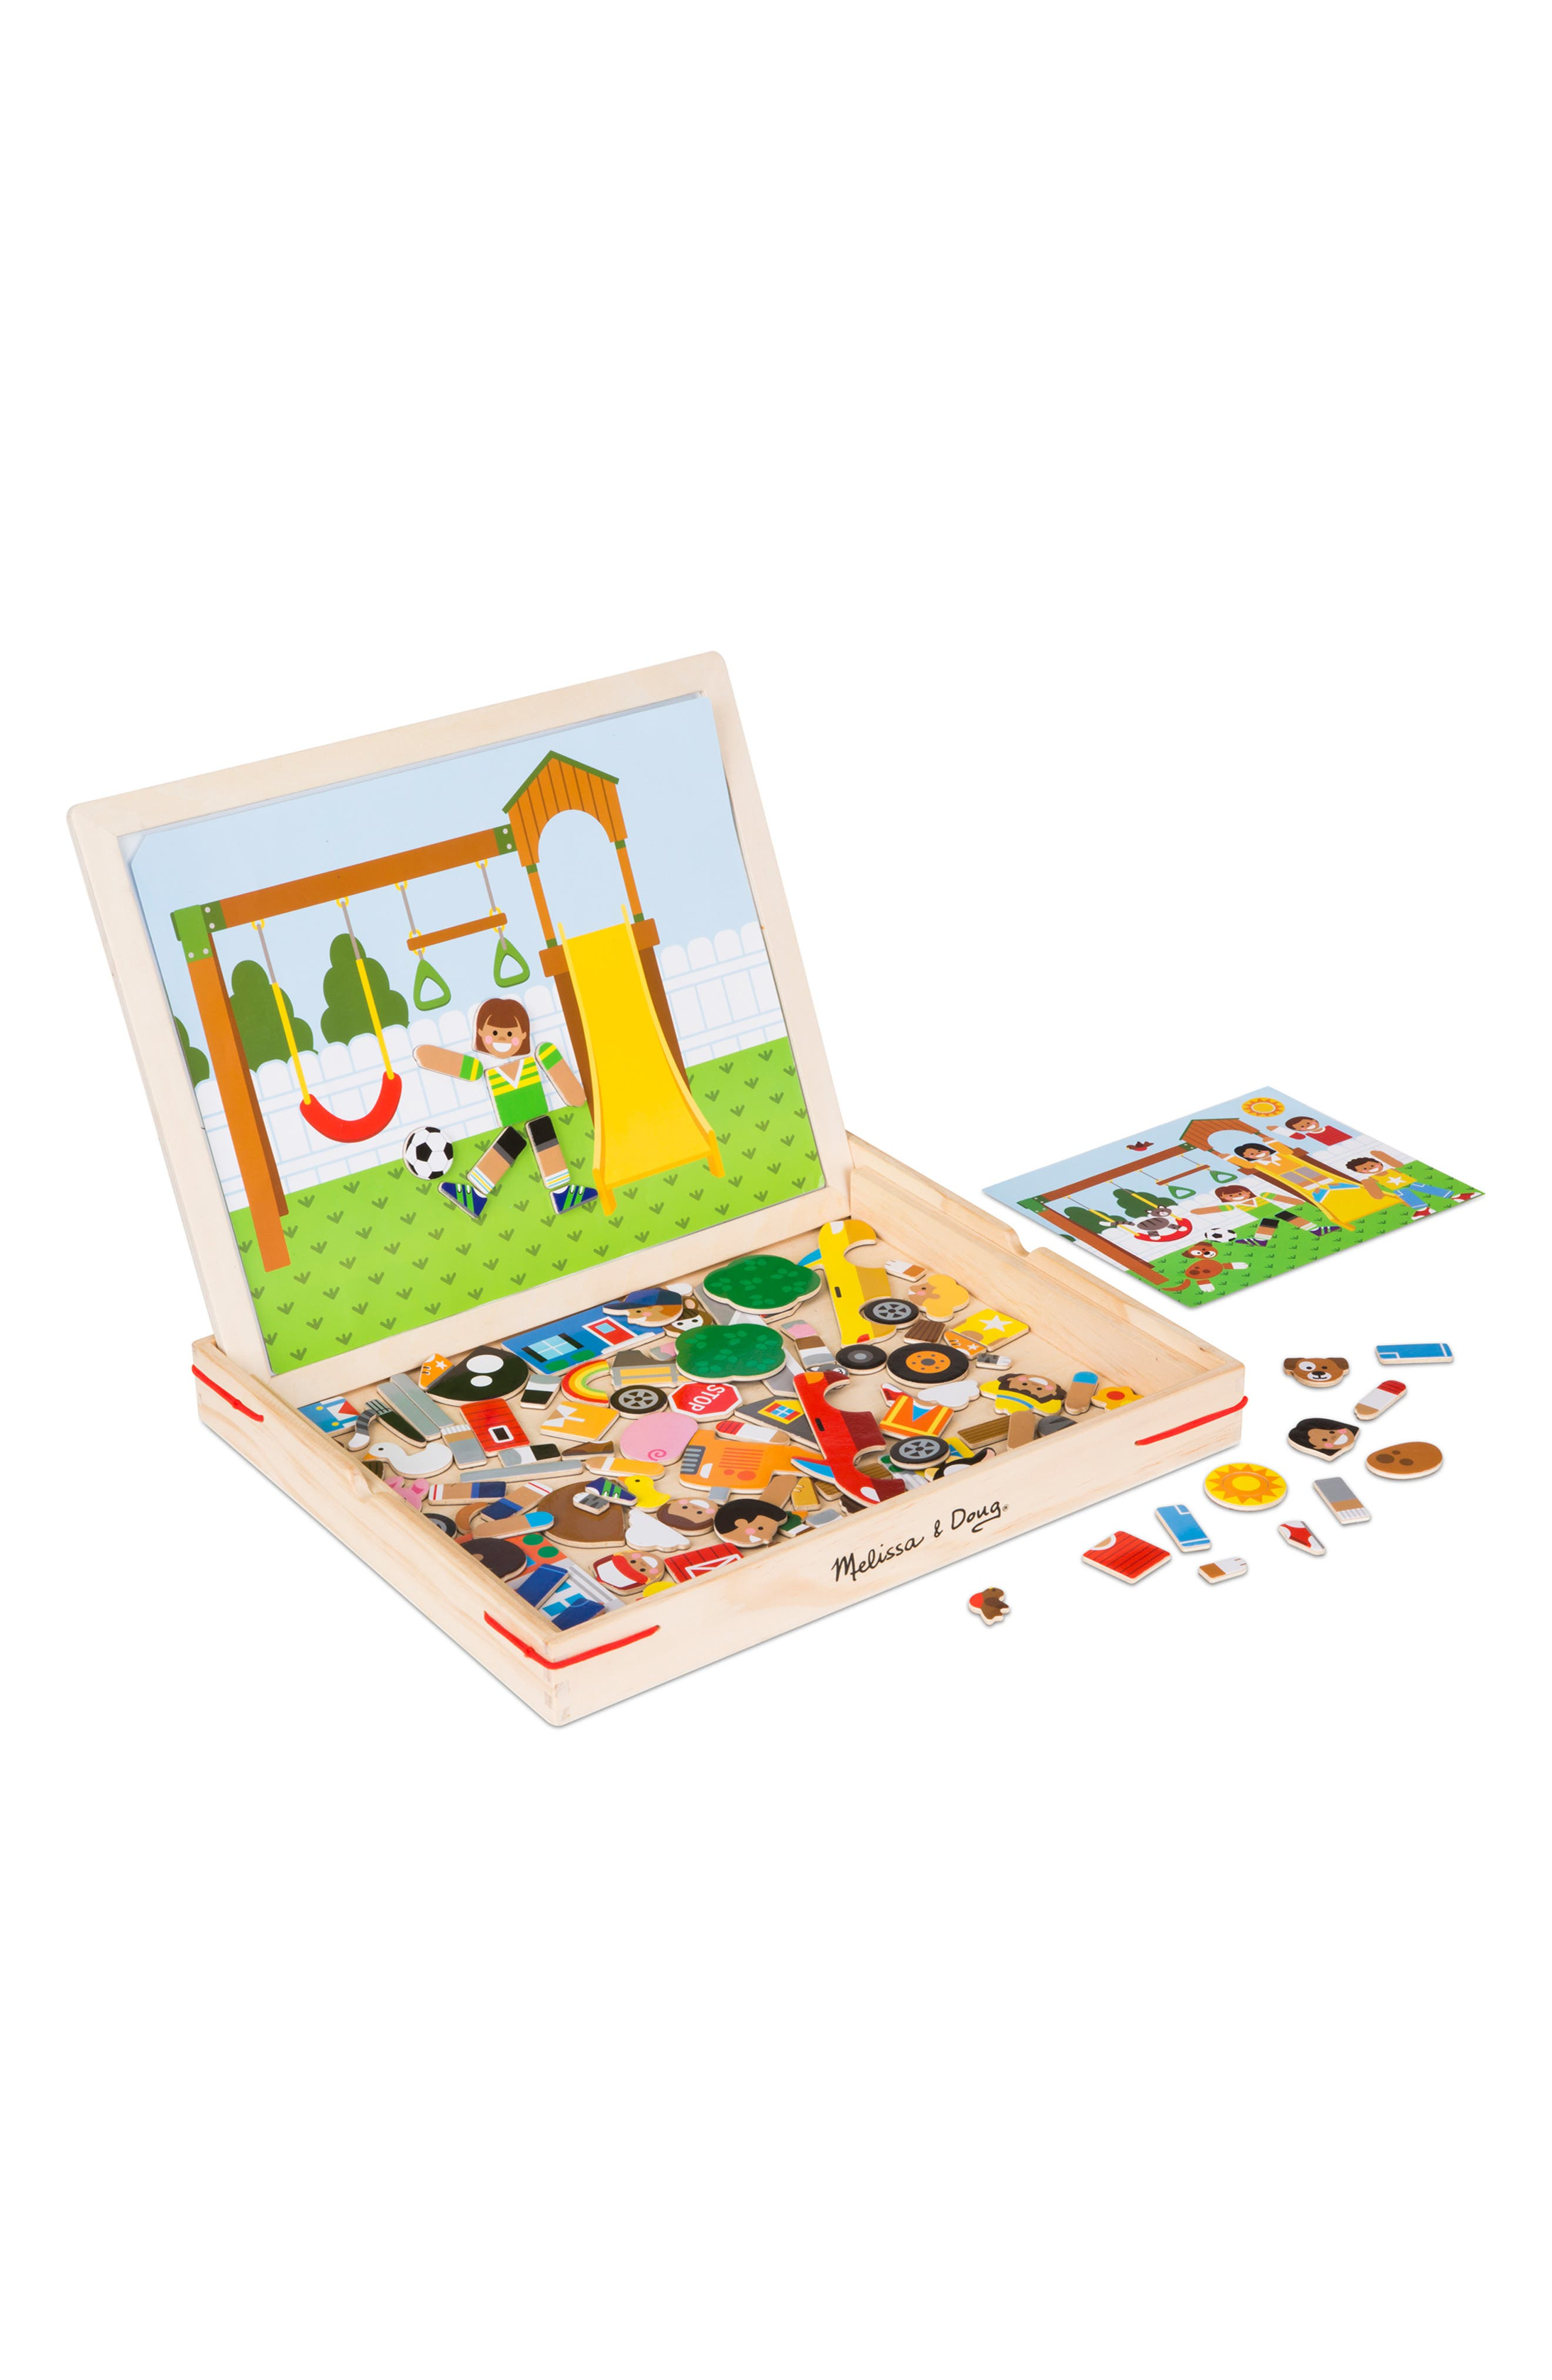 MELISSA & DOUG,                             Wooden Magnetic Matching Picture Game Play Set,                             Alternate thumbnail 2, color,                             960